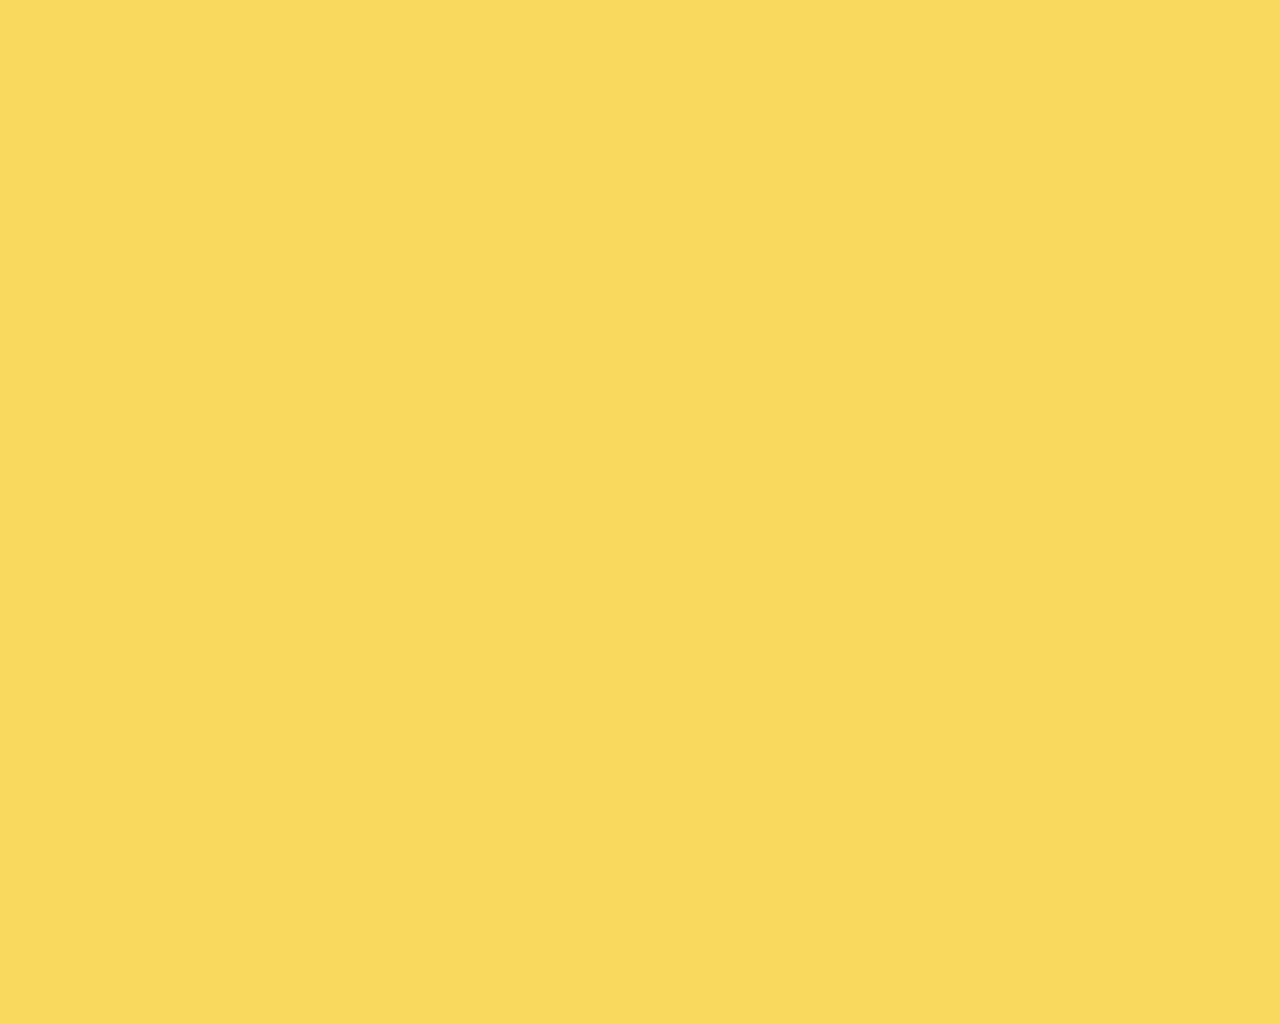 1280x1024 Royal Yellow Solid Color Background